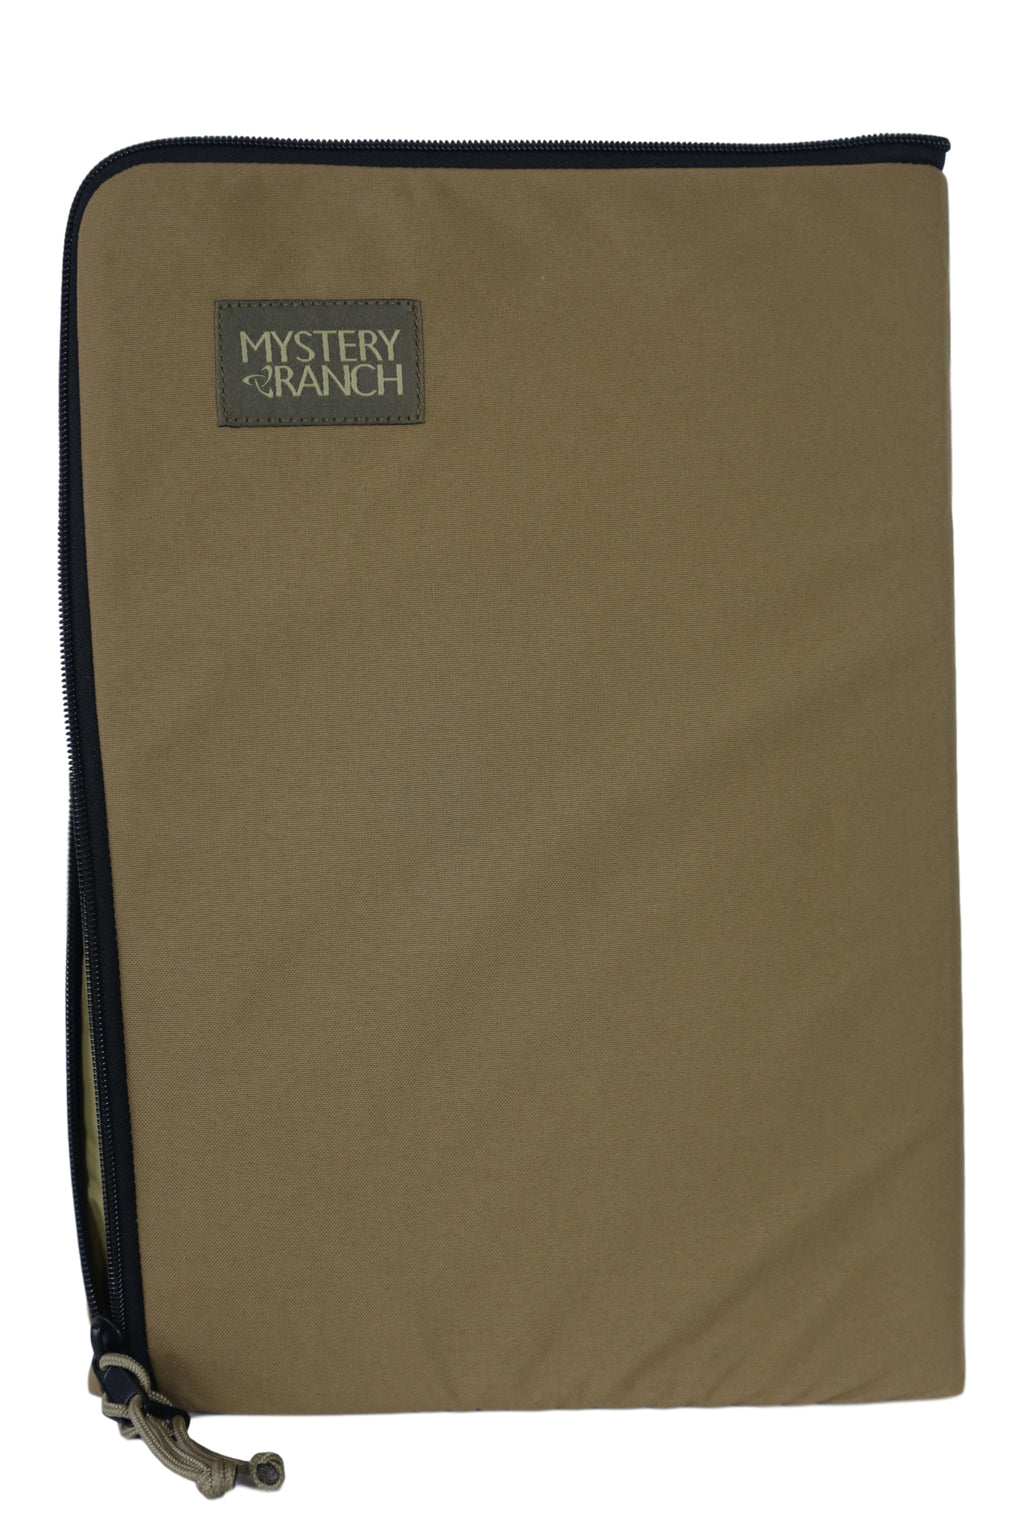 Mystery Ranch Spadelock Laptop Sleeve